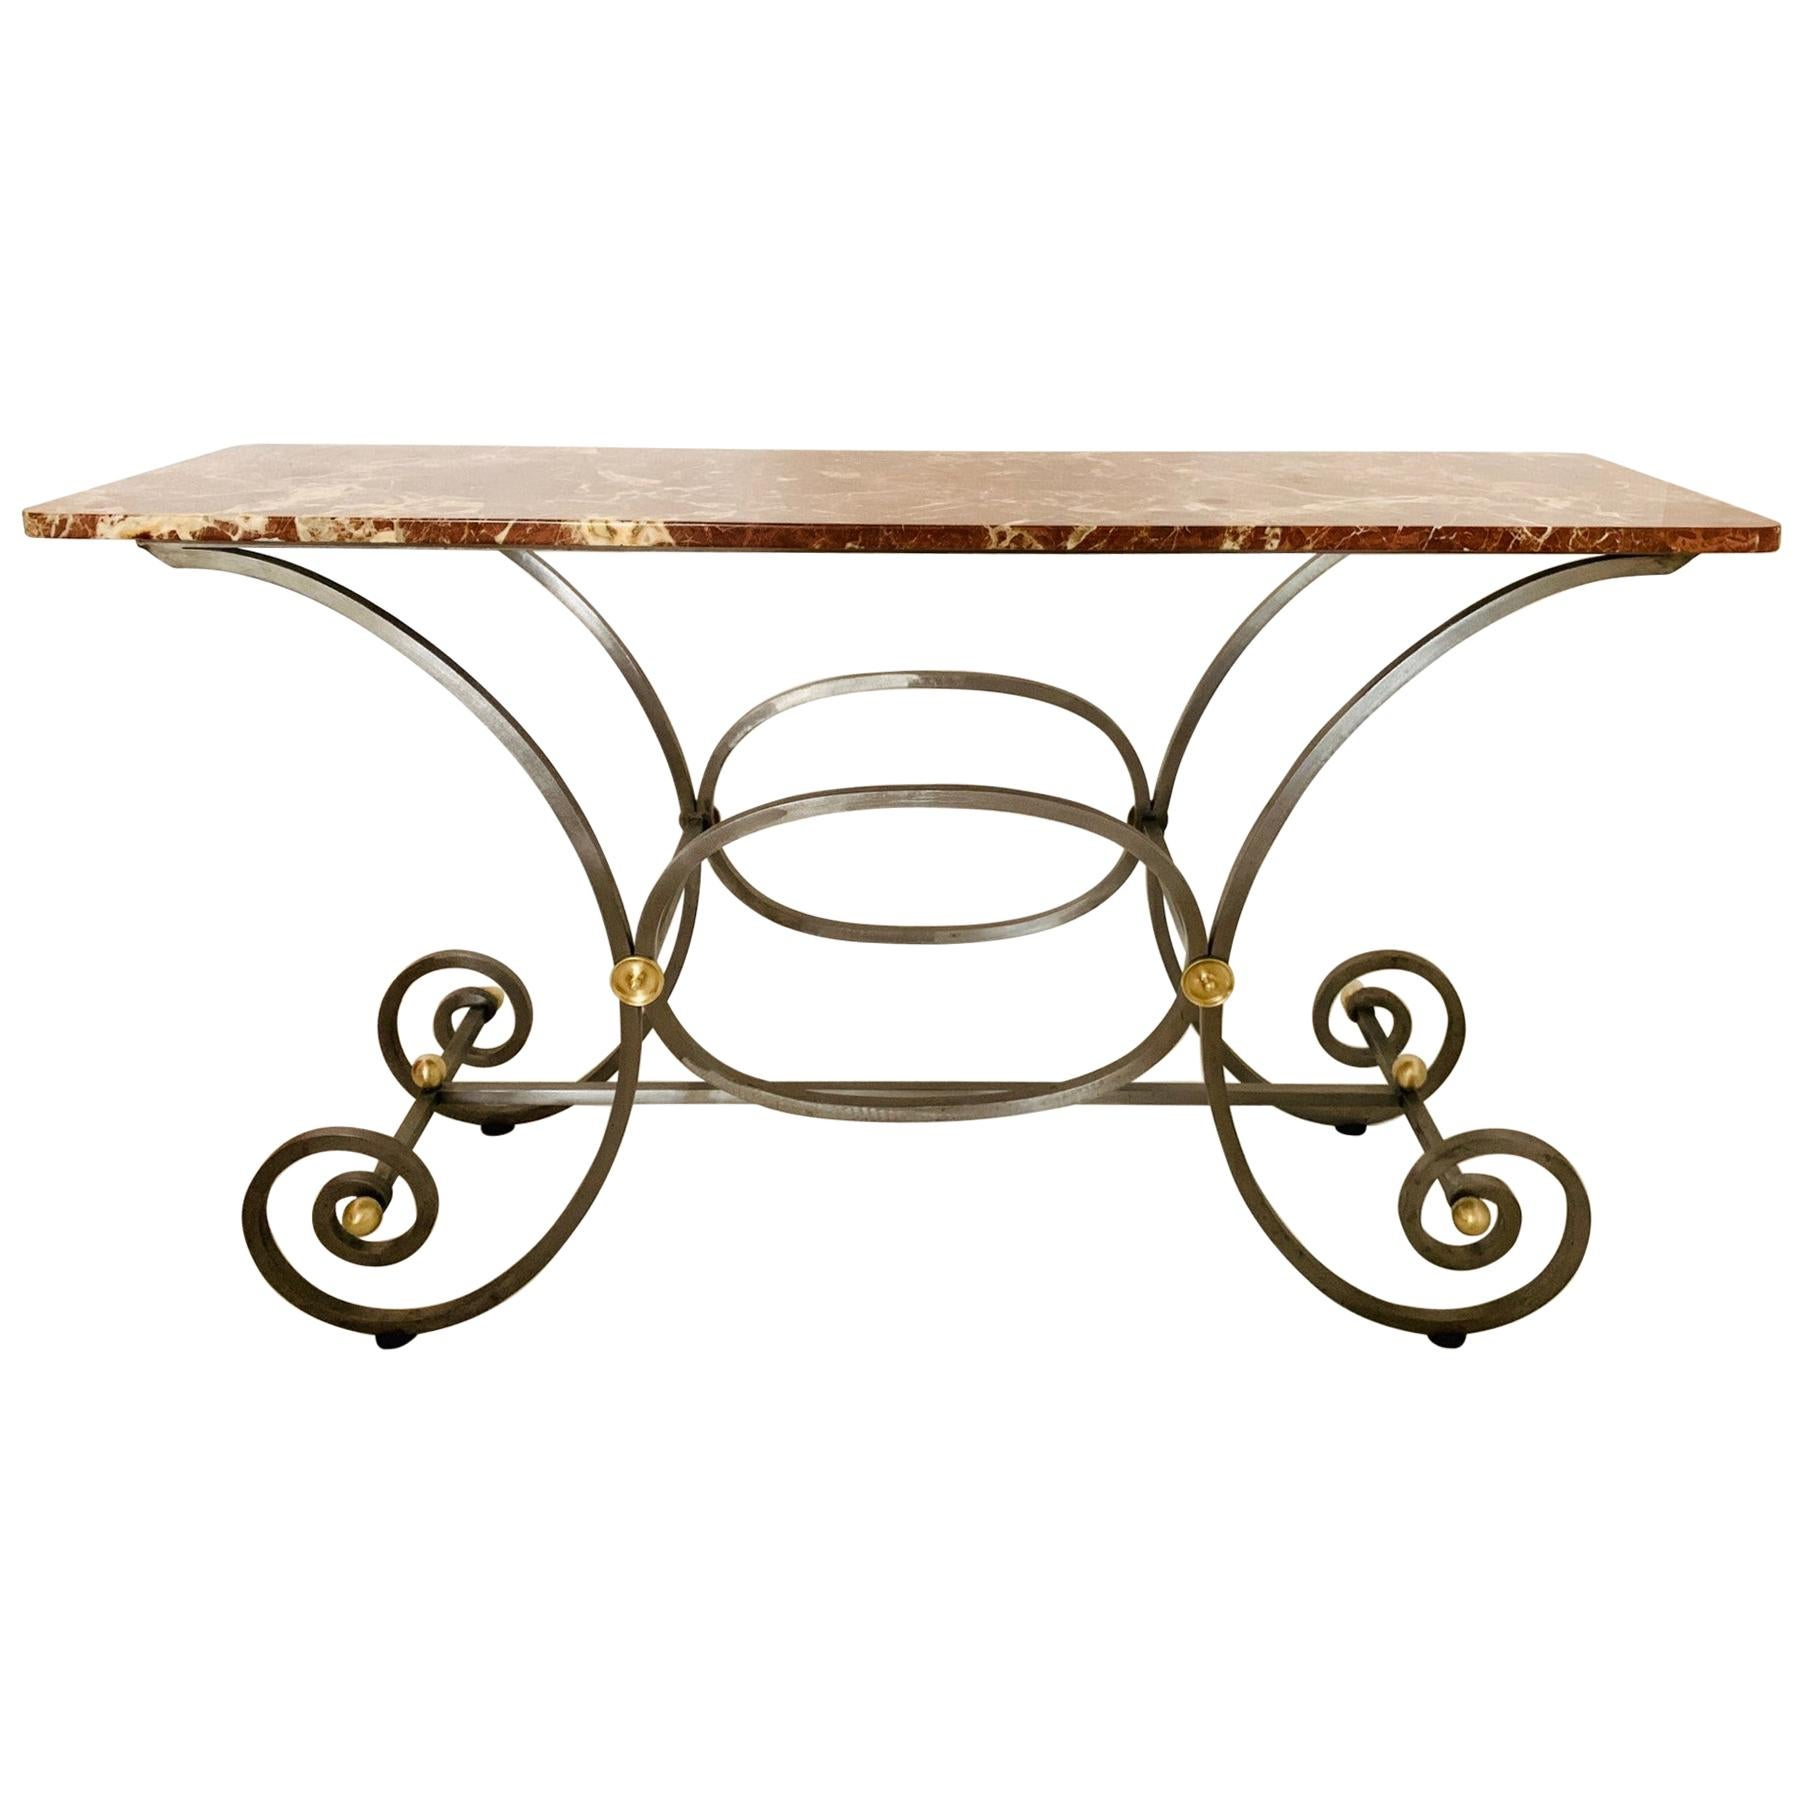 French Iron and Marble-Top Console